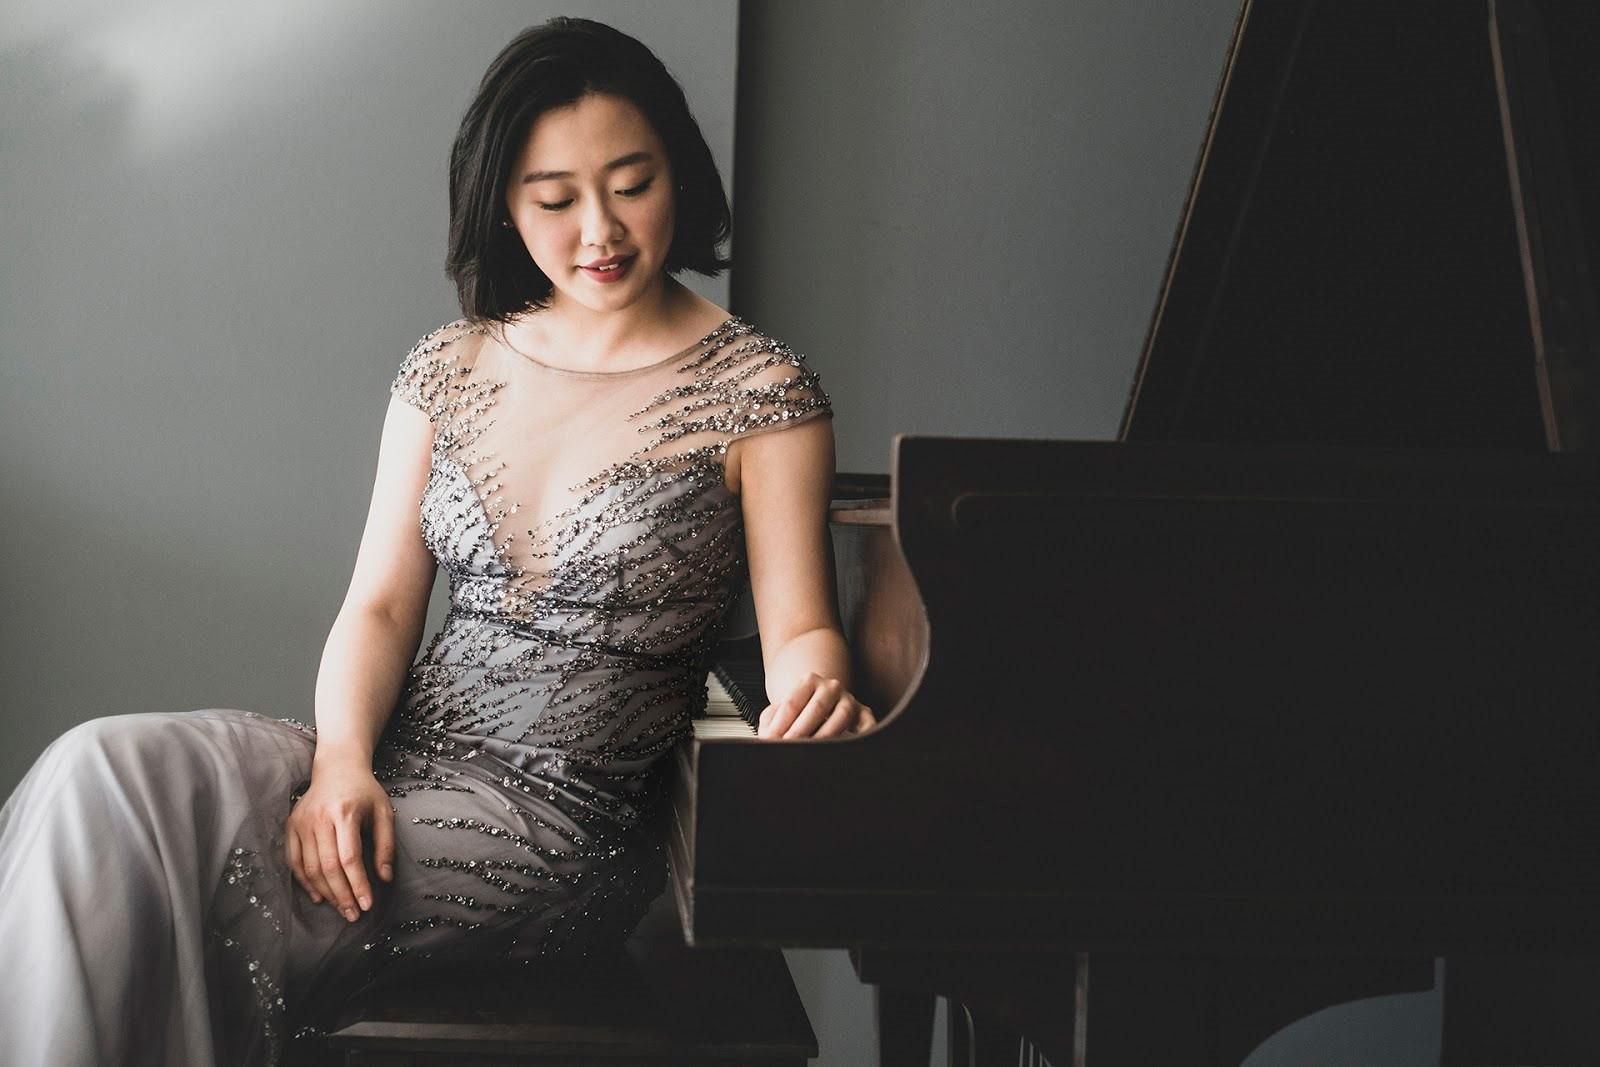 Pianist Fei-Fei performs Aug. 9 at Music Mountain